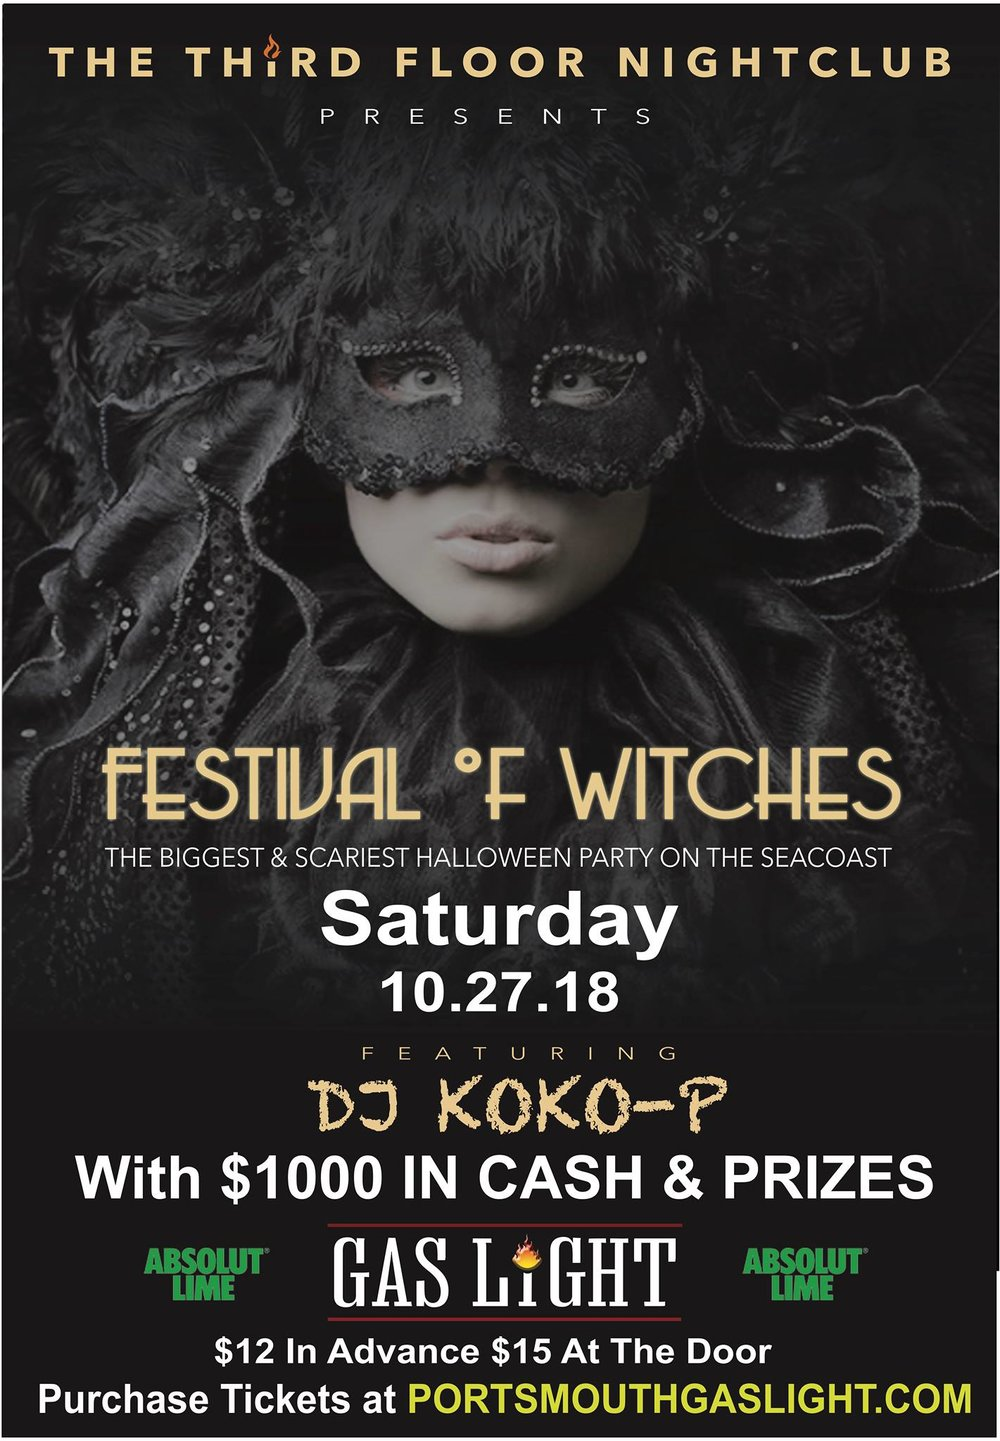 Festival of Witches - An all out frightful halloween party in downtown Portsmouth, NH at the famous Portsmouth Gaslight!  $1000 in cash and prizes up for grabs!$12 advance, $15 at the door.